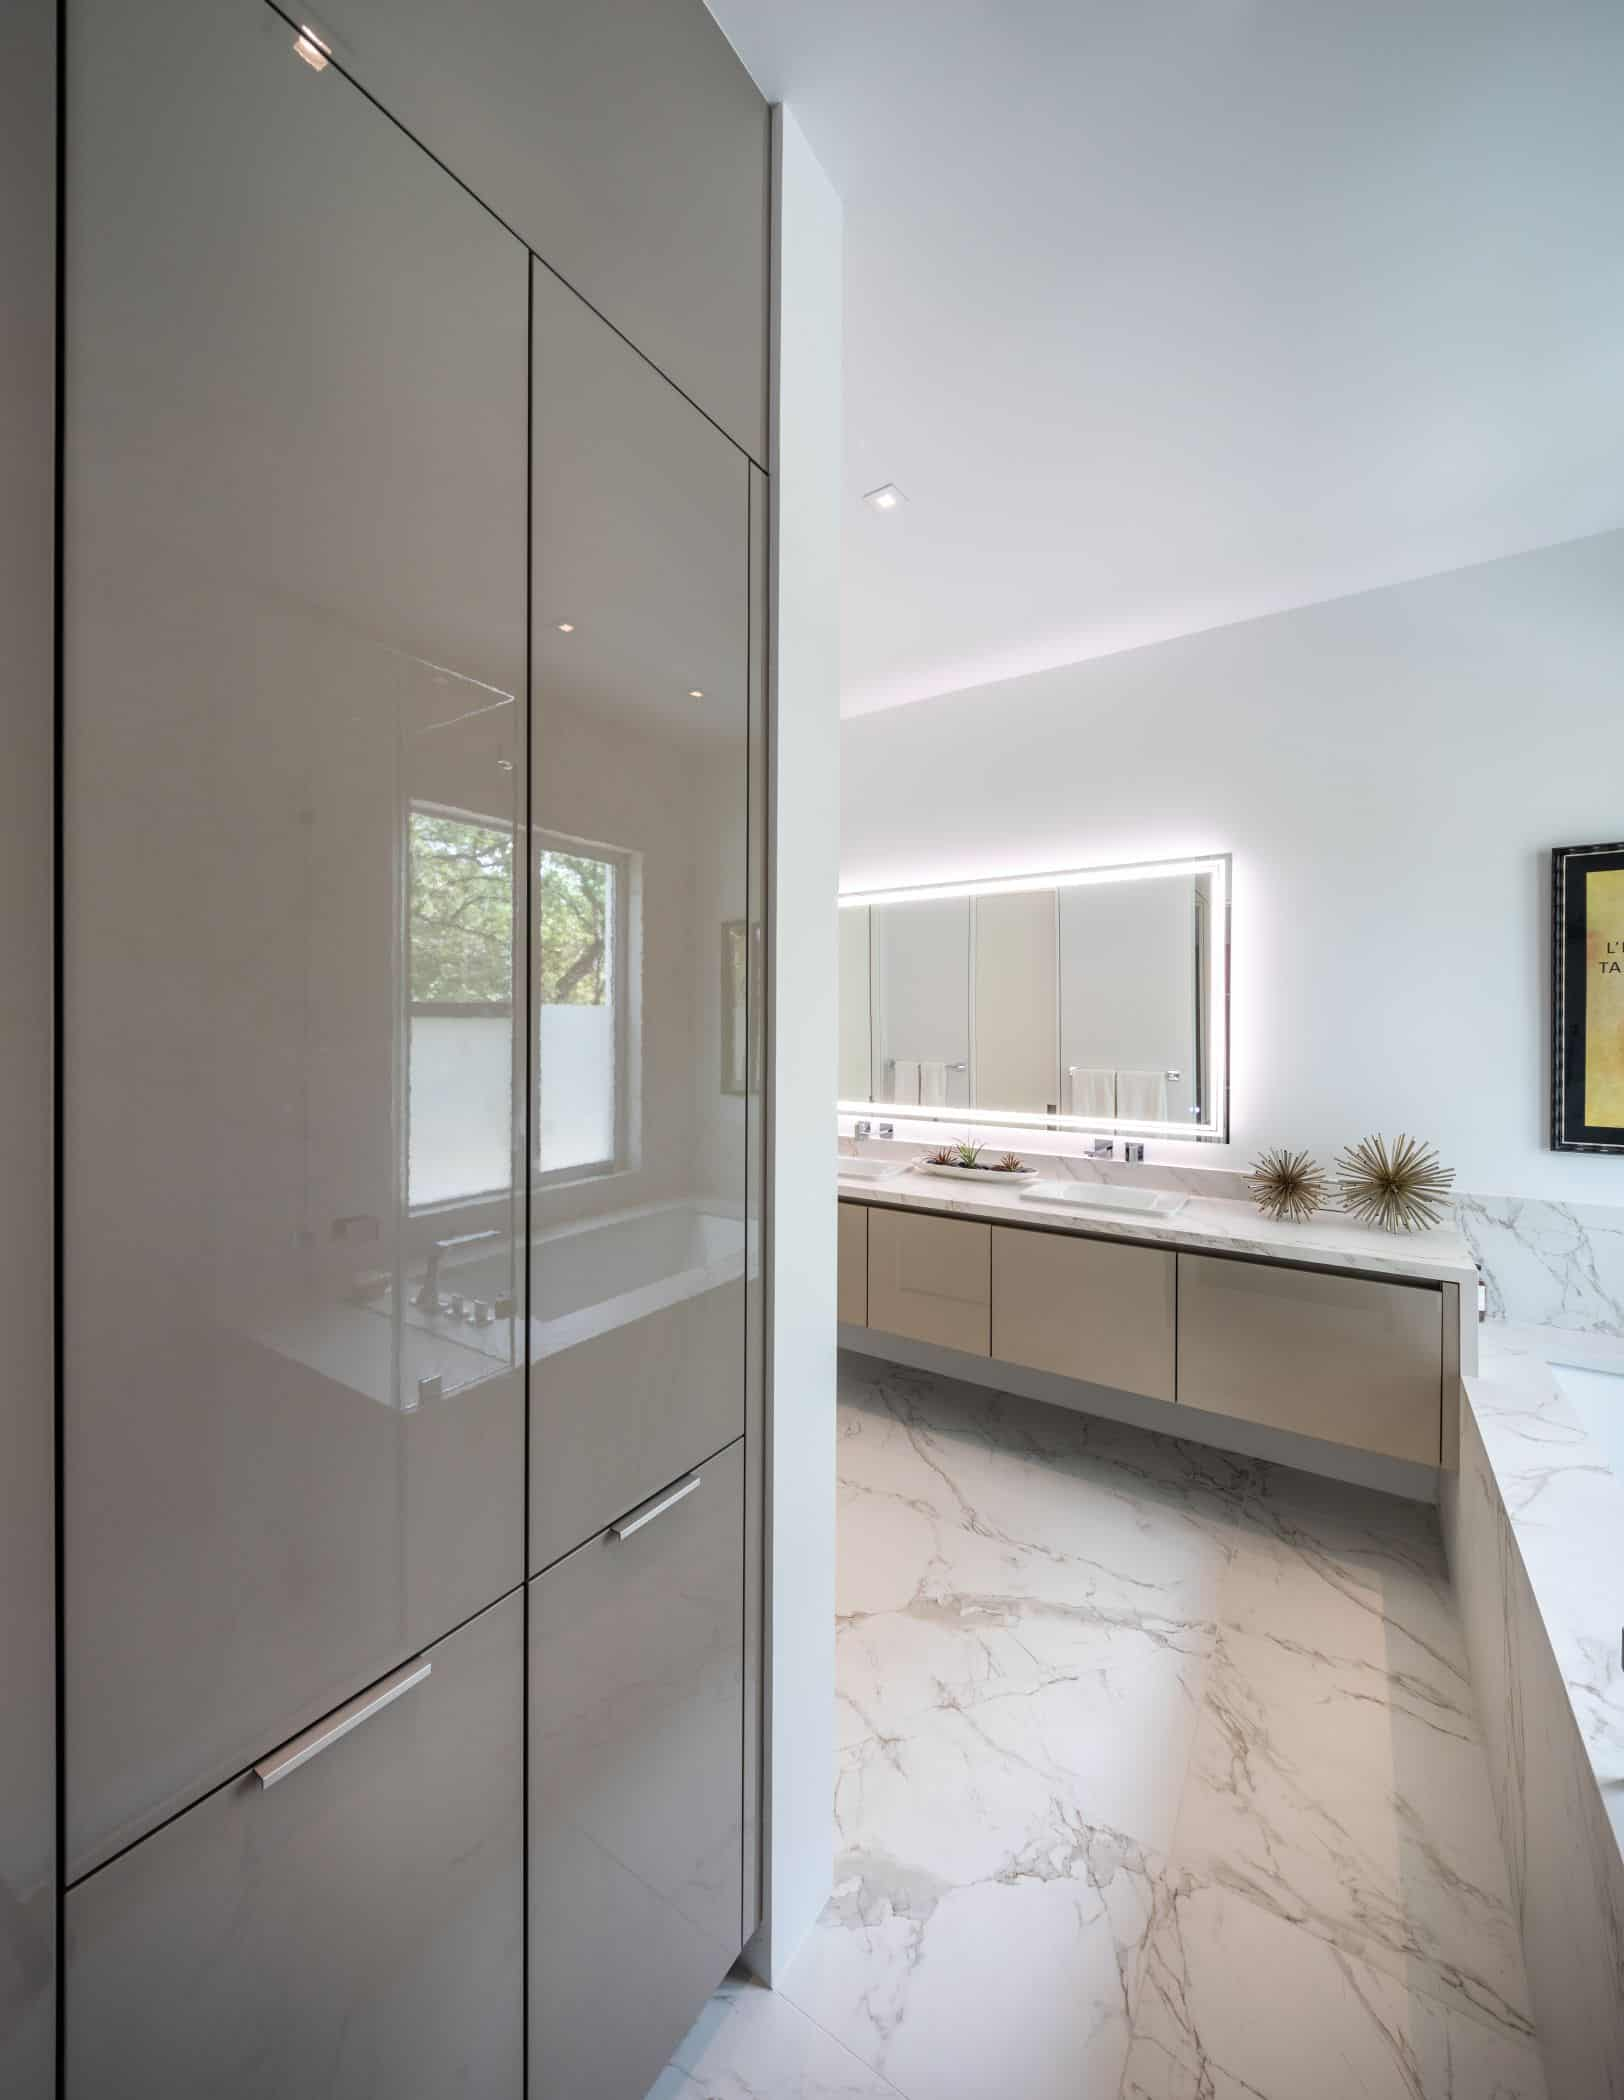 storage cabinetry in amaster bathroom fitted by eggersmann in a houston new construction home